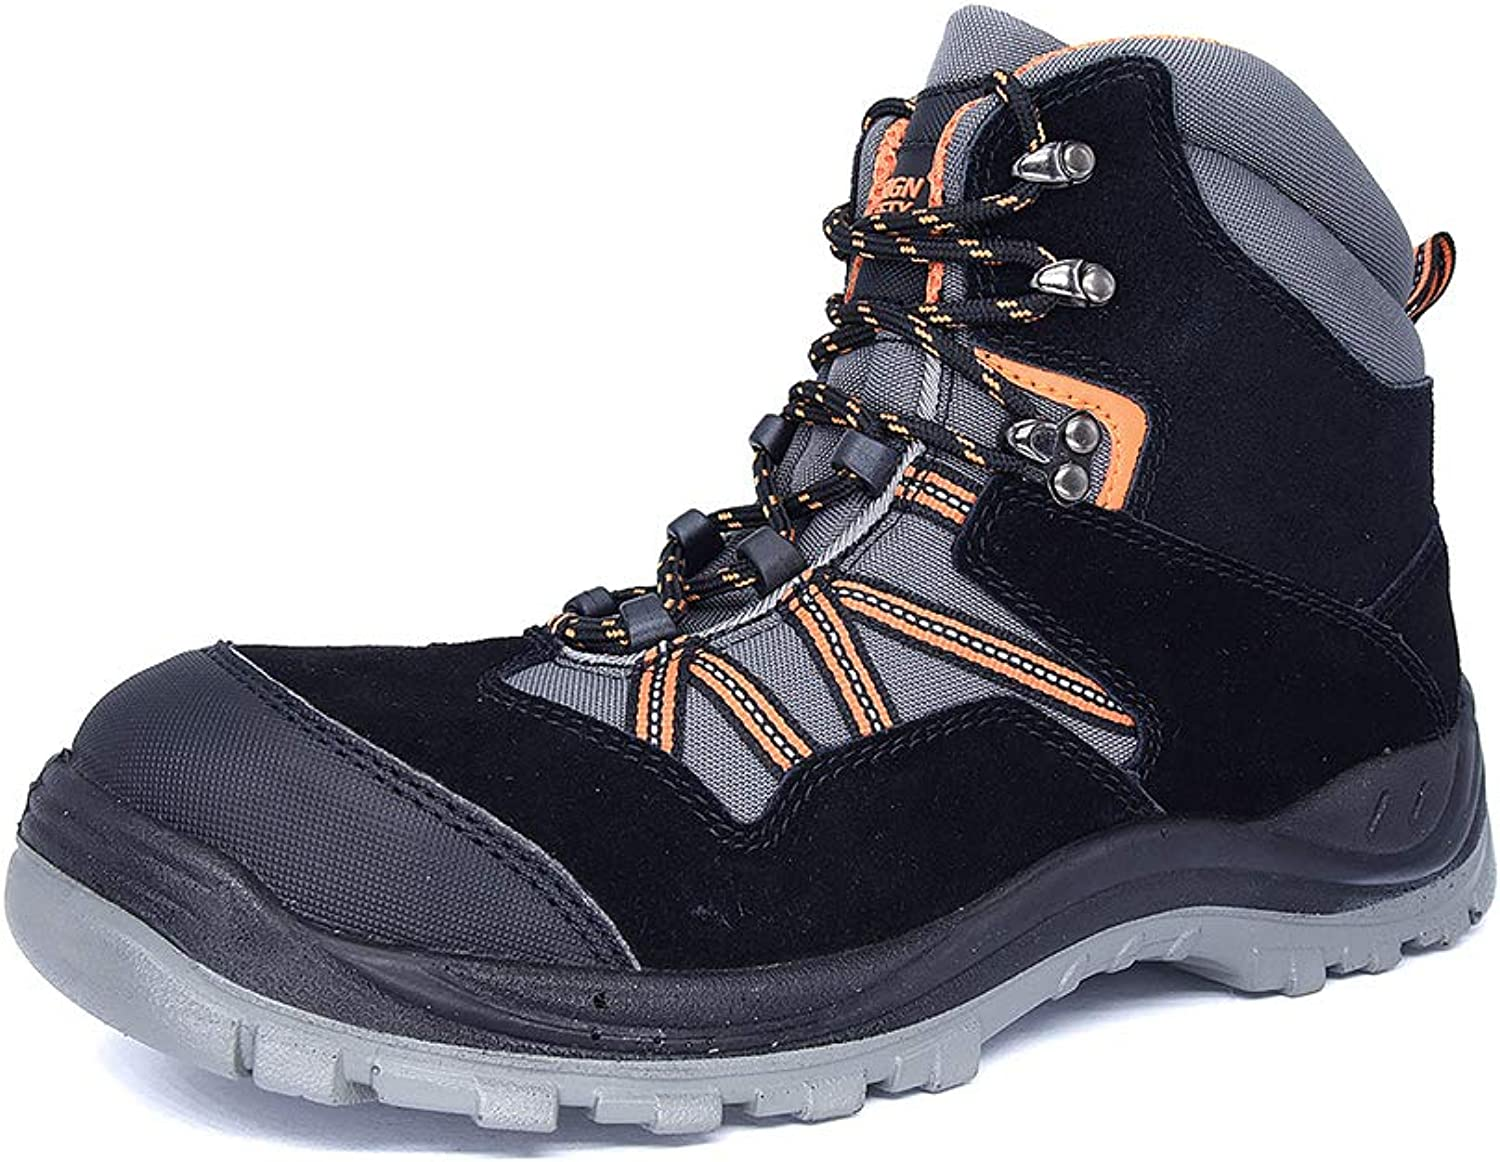 DANDANJIE Mens Hiking Shoes Fall /& Winter High Top Mountaineering Shoes Lace Up Warm Outdoor Sports Booties